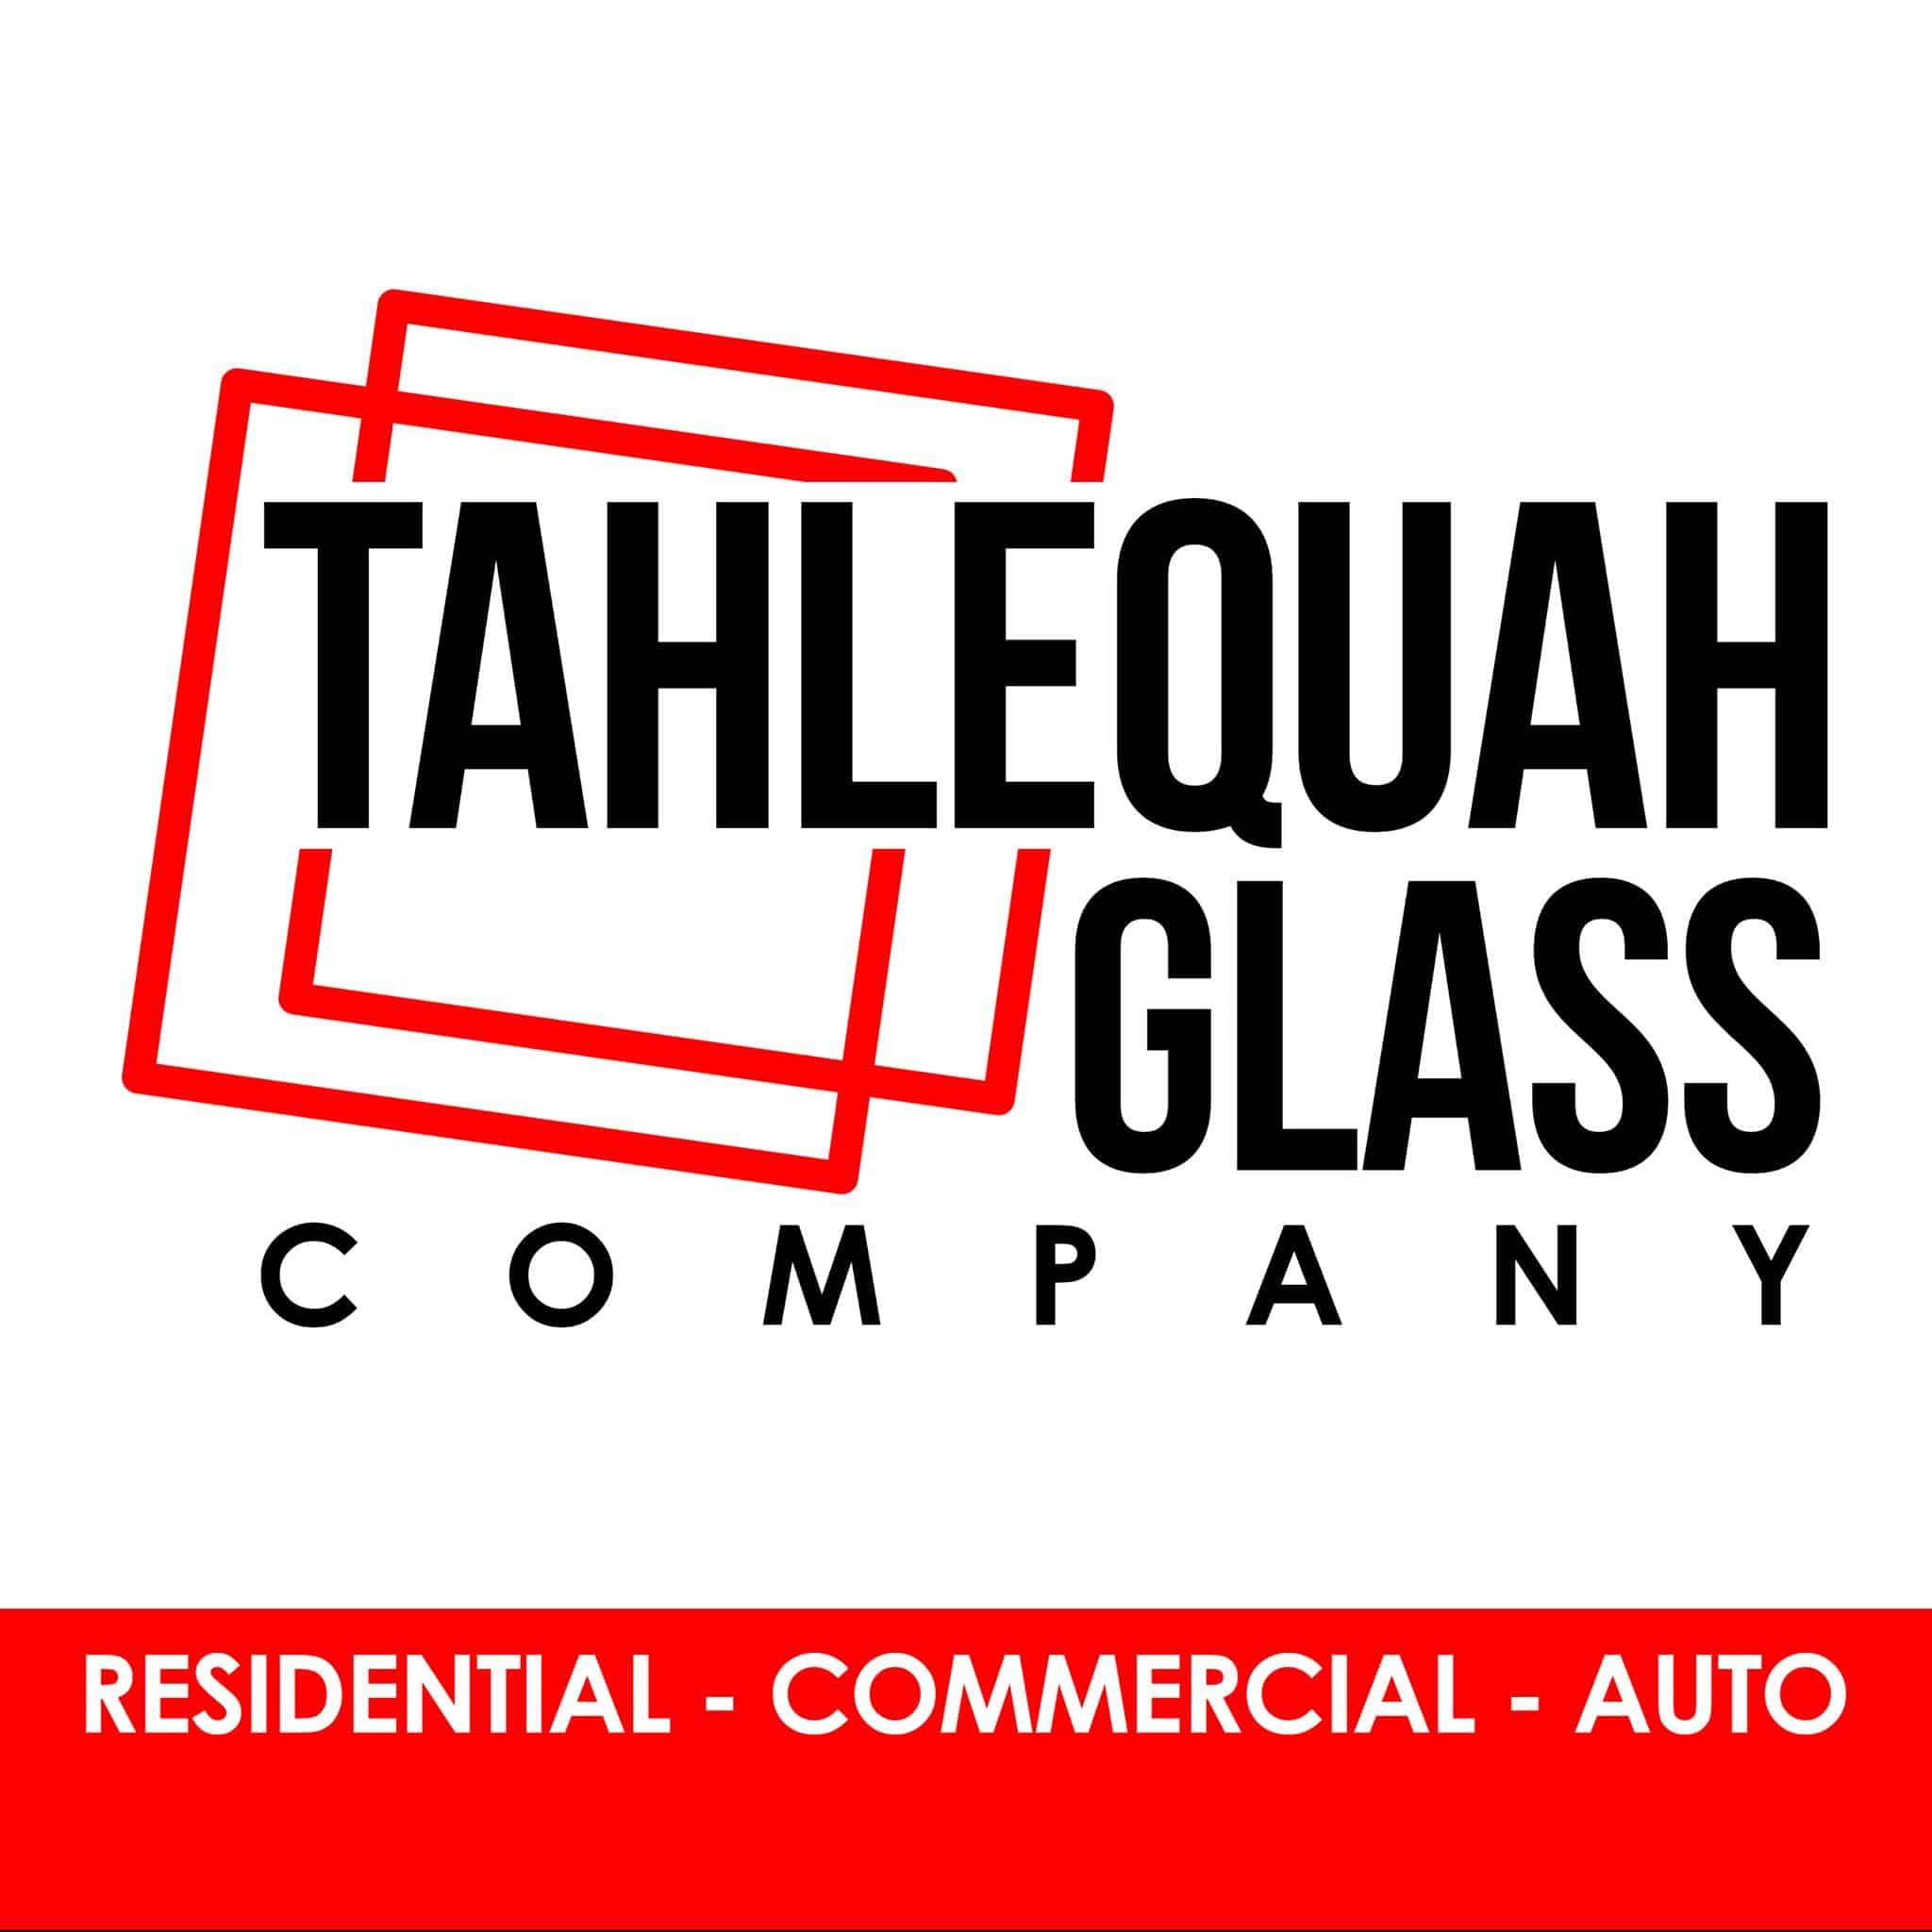 The logo for Tahlequah Glass Company